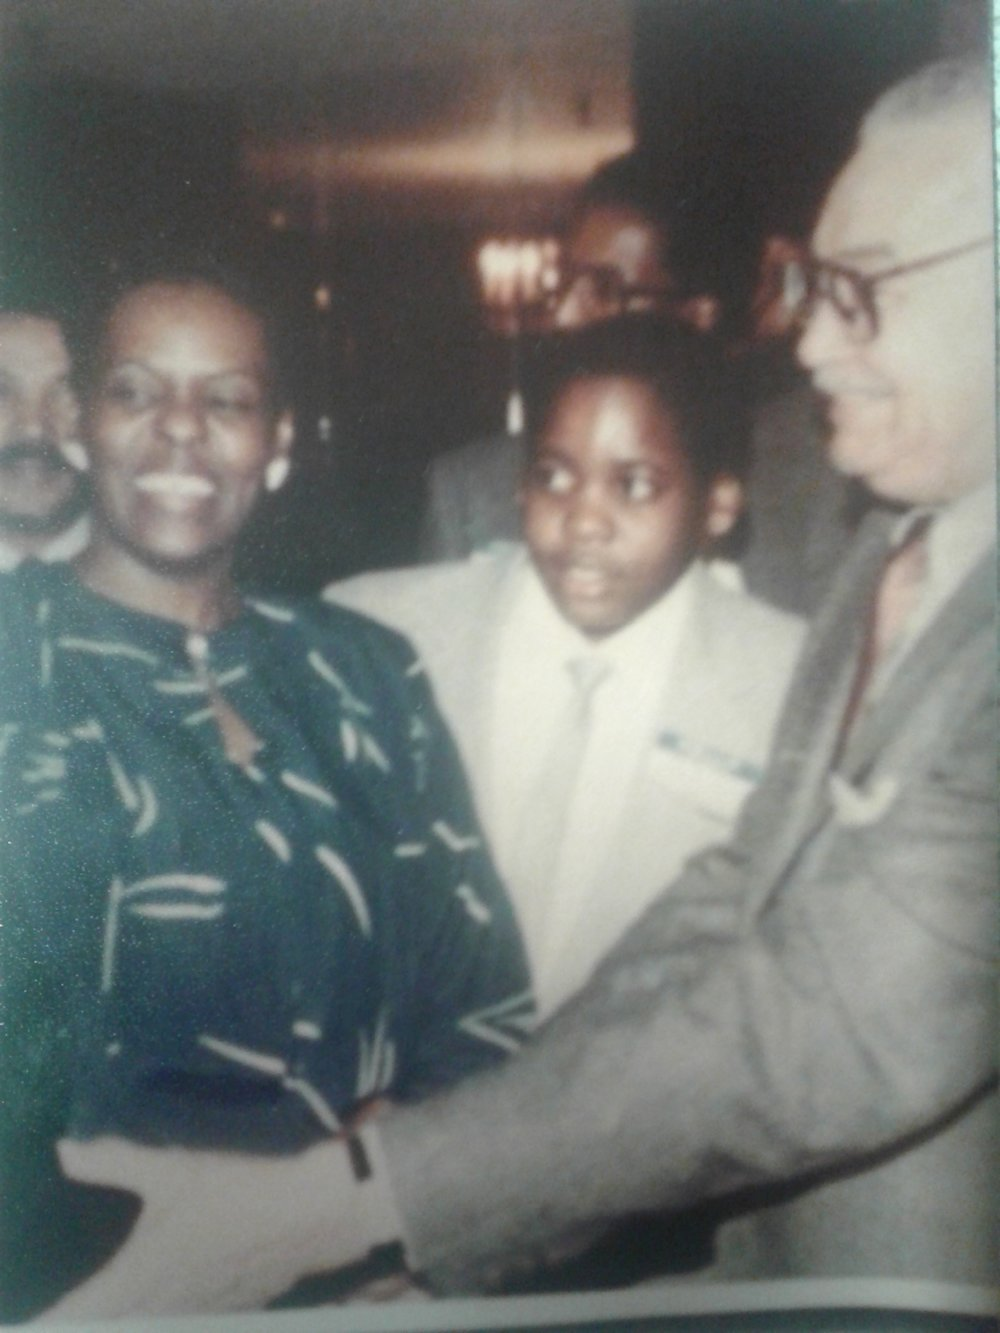 At age nine, after winning a black studies contest at school, Kwame met Coleman Young at the Manoogian Mansion, the official residence of the mayor of Detroit. It was there that Kwame first dreamt of one day becoming mayor.  Courtesy of Carolyn Kilpatrick.